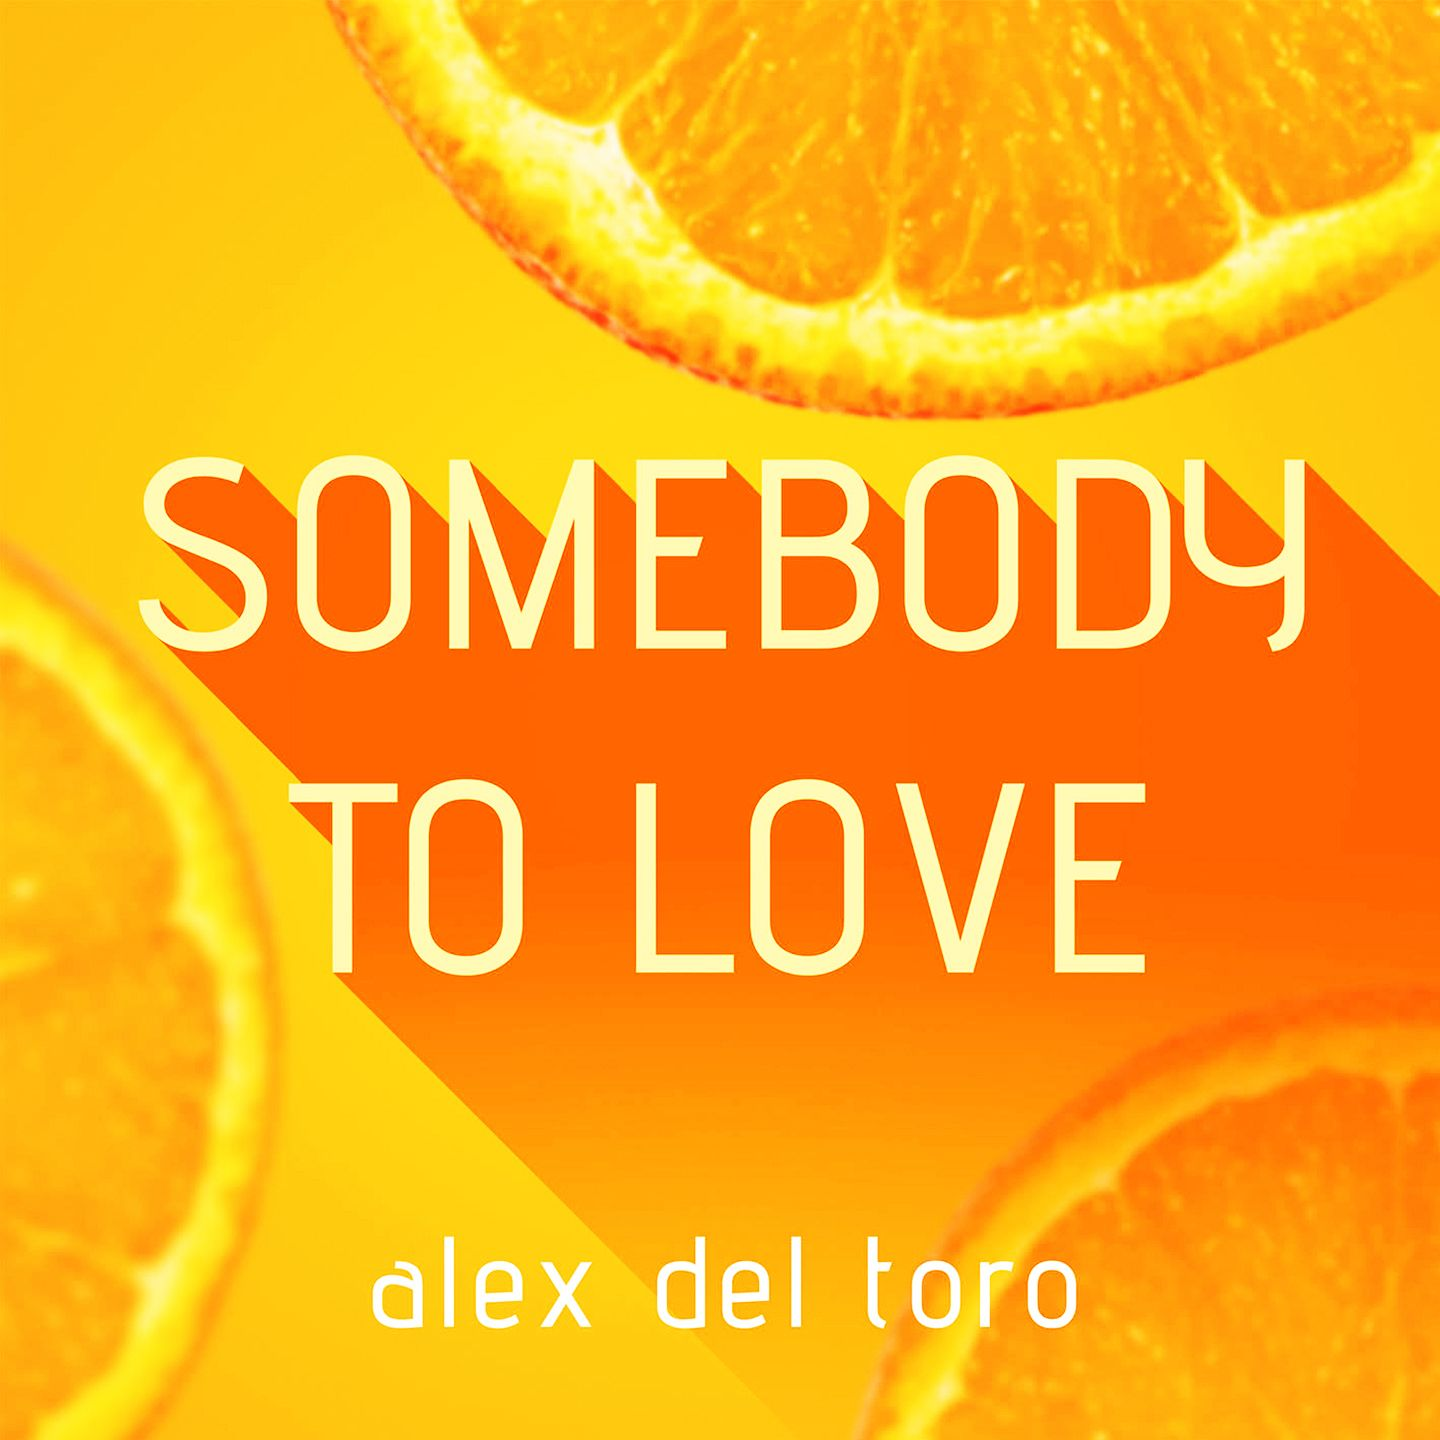 alex_del_toro_-_somebody_to_love_wao_music_wao_agency_1.jpg